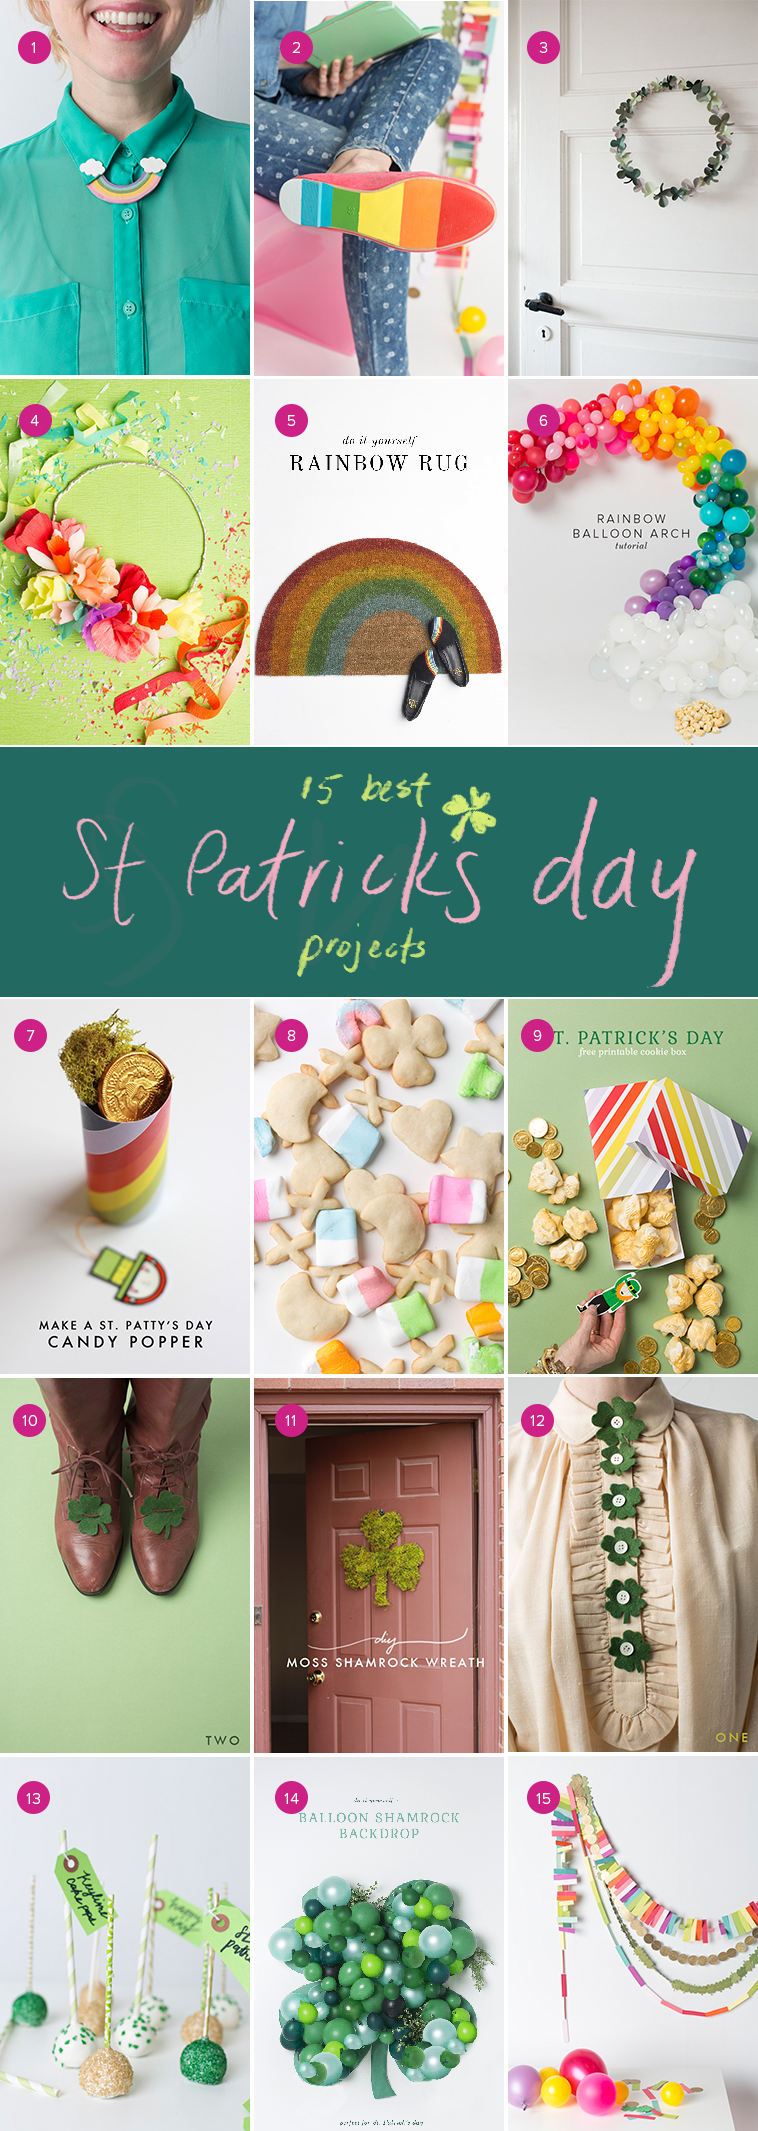 15-best-st-patricks-day-projects